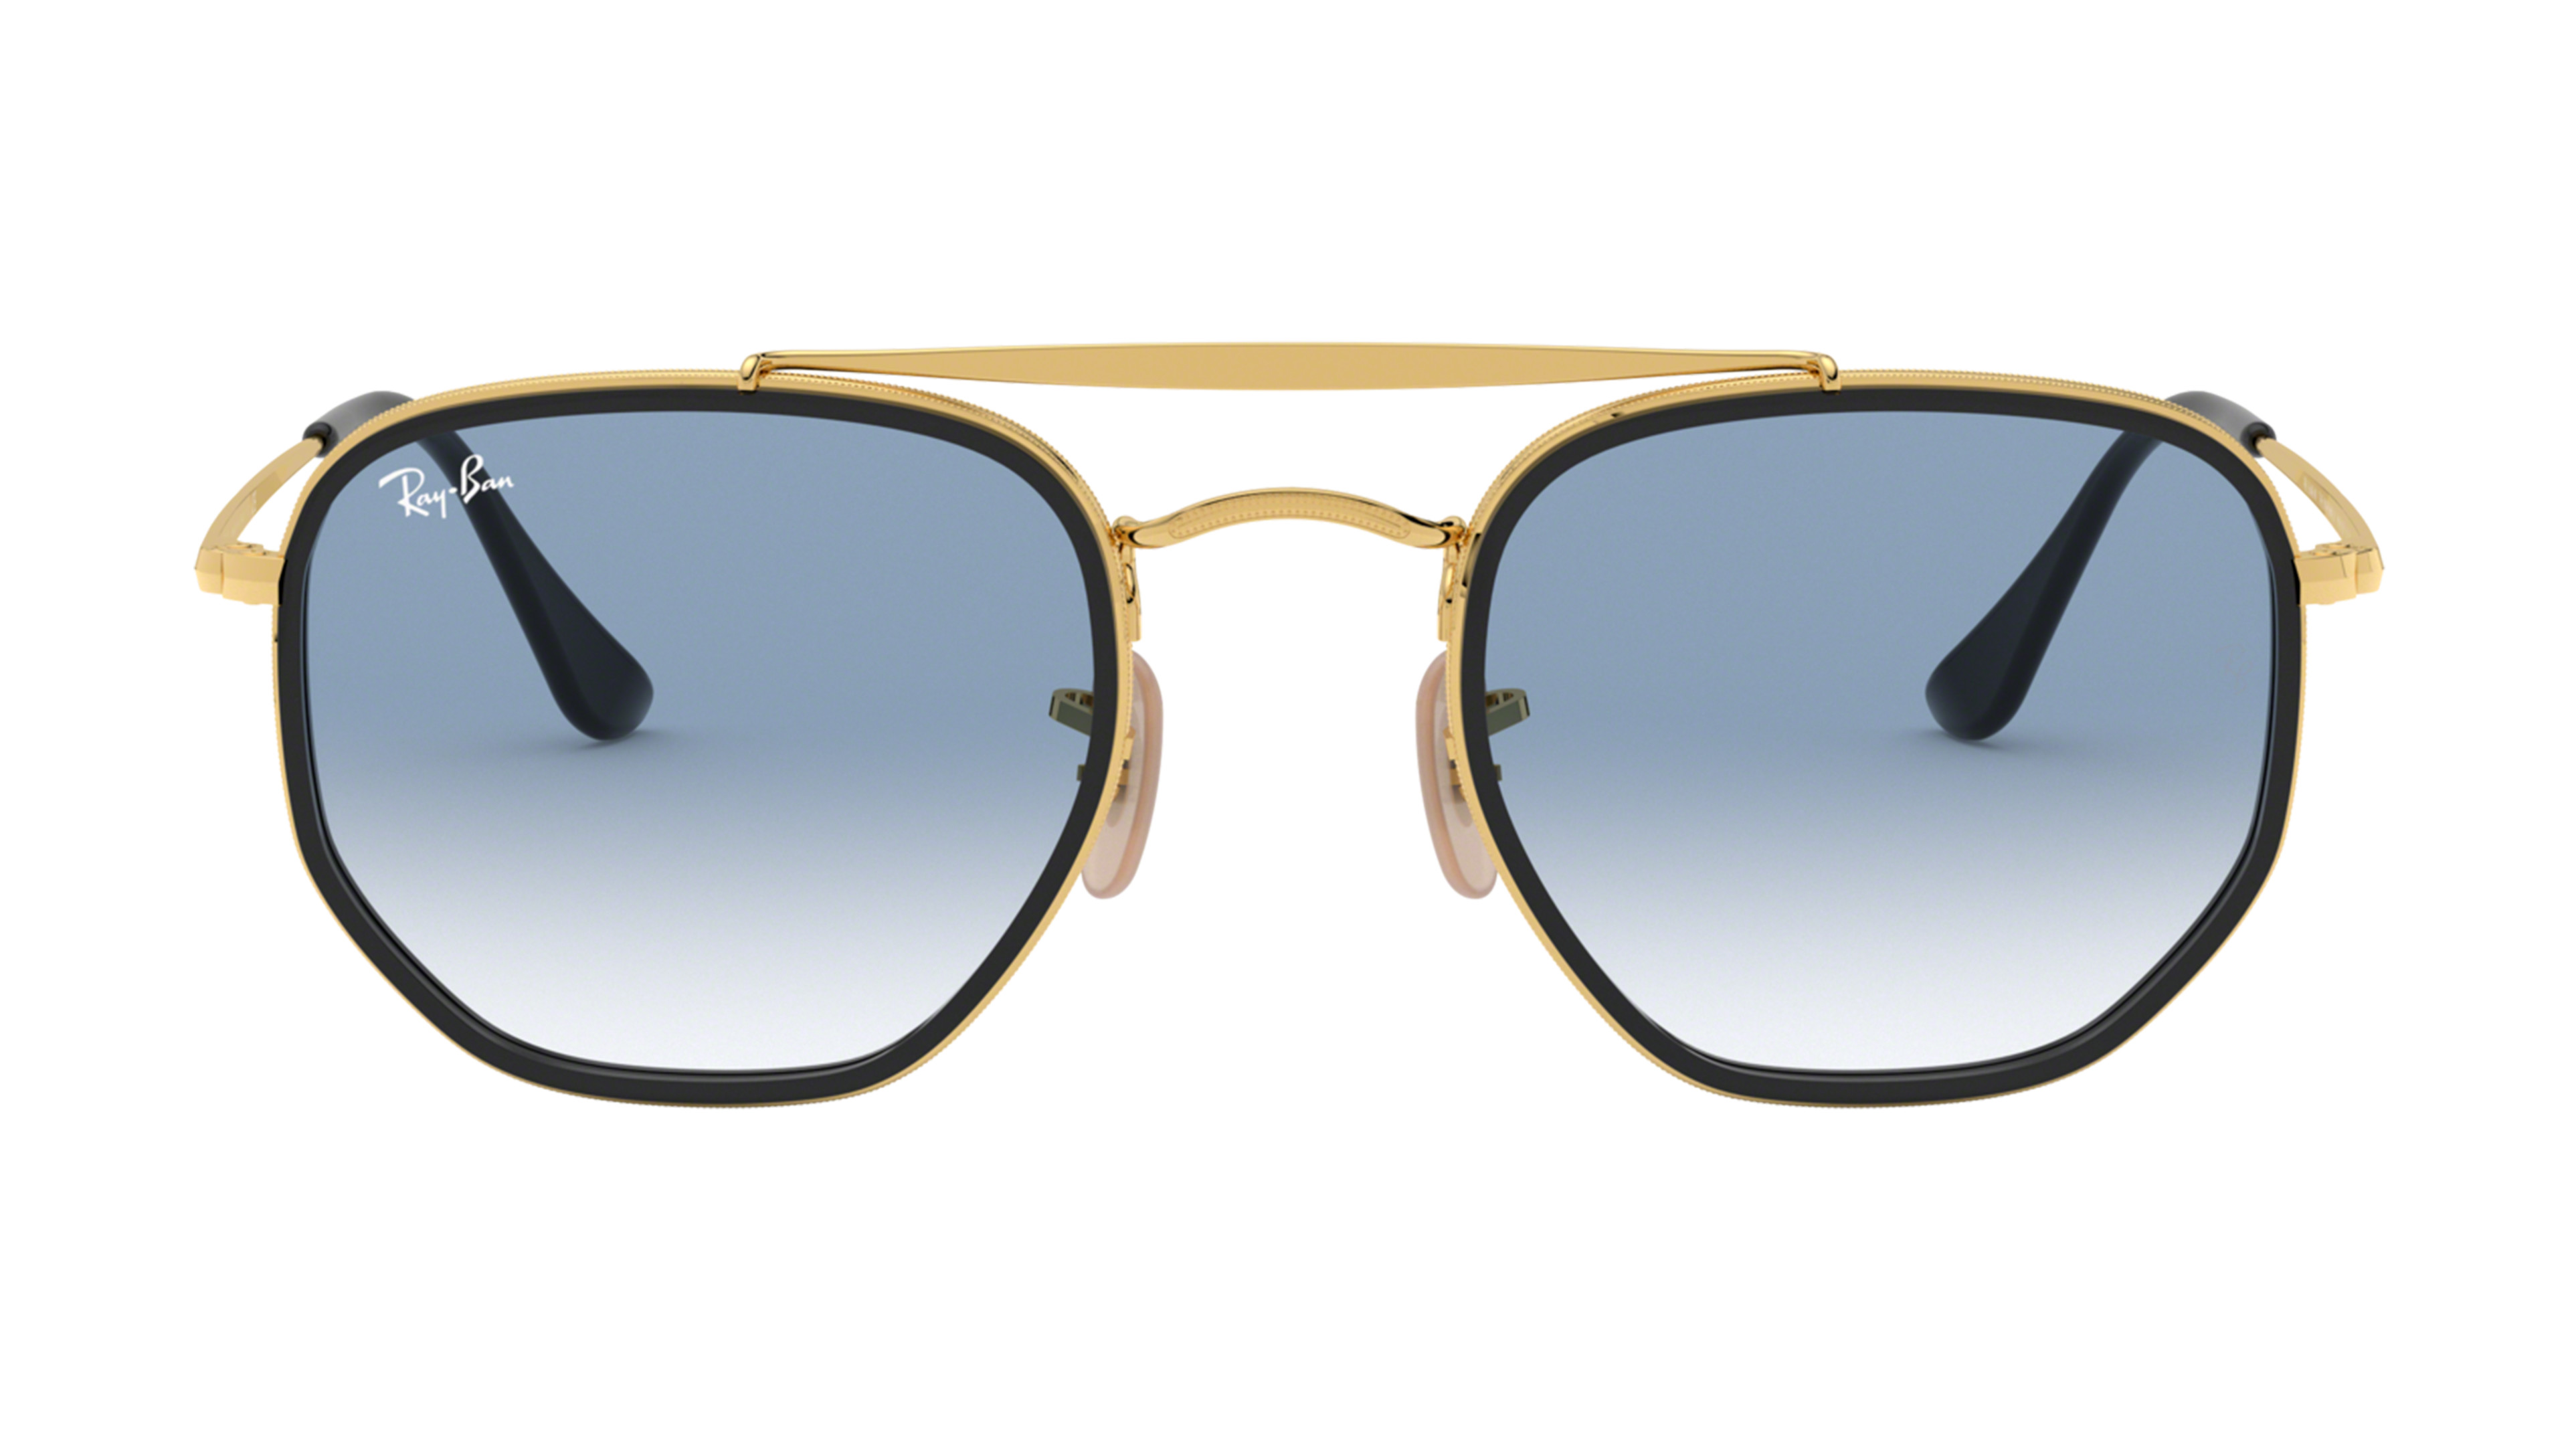 8056597073172-front-Ray-Ban-0RB3648M-91673F-The-Marshal-2